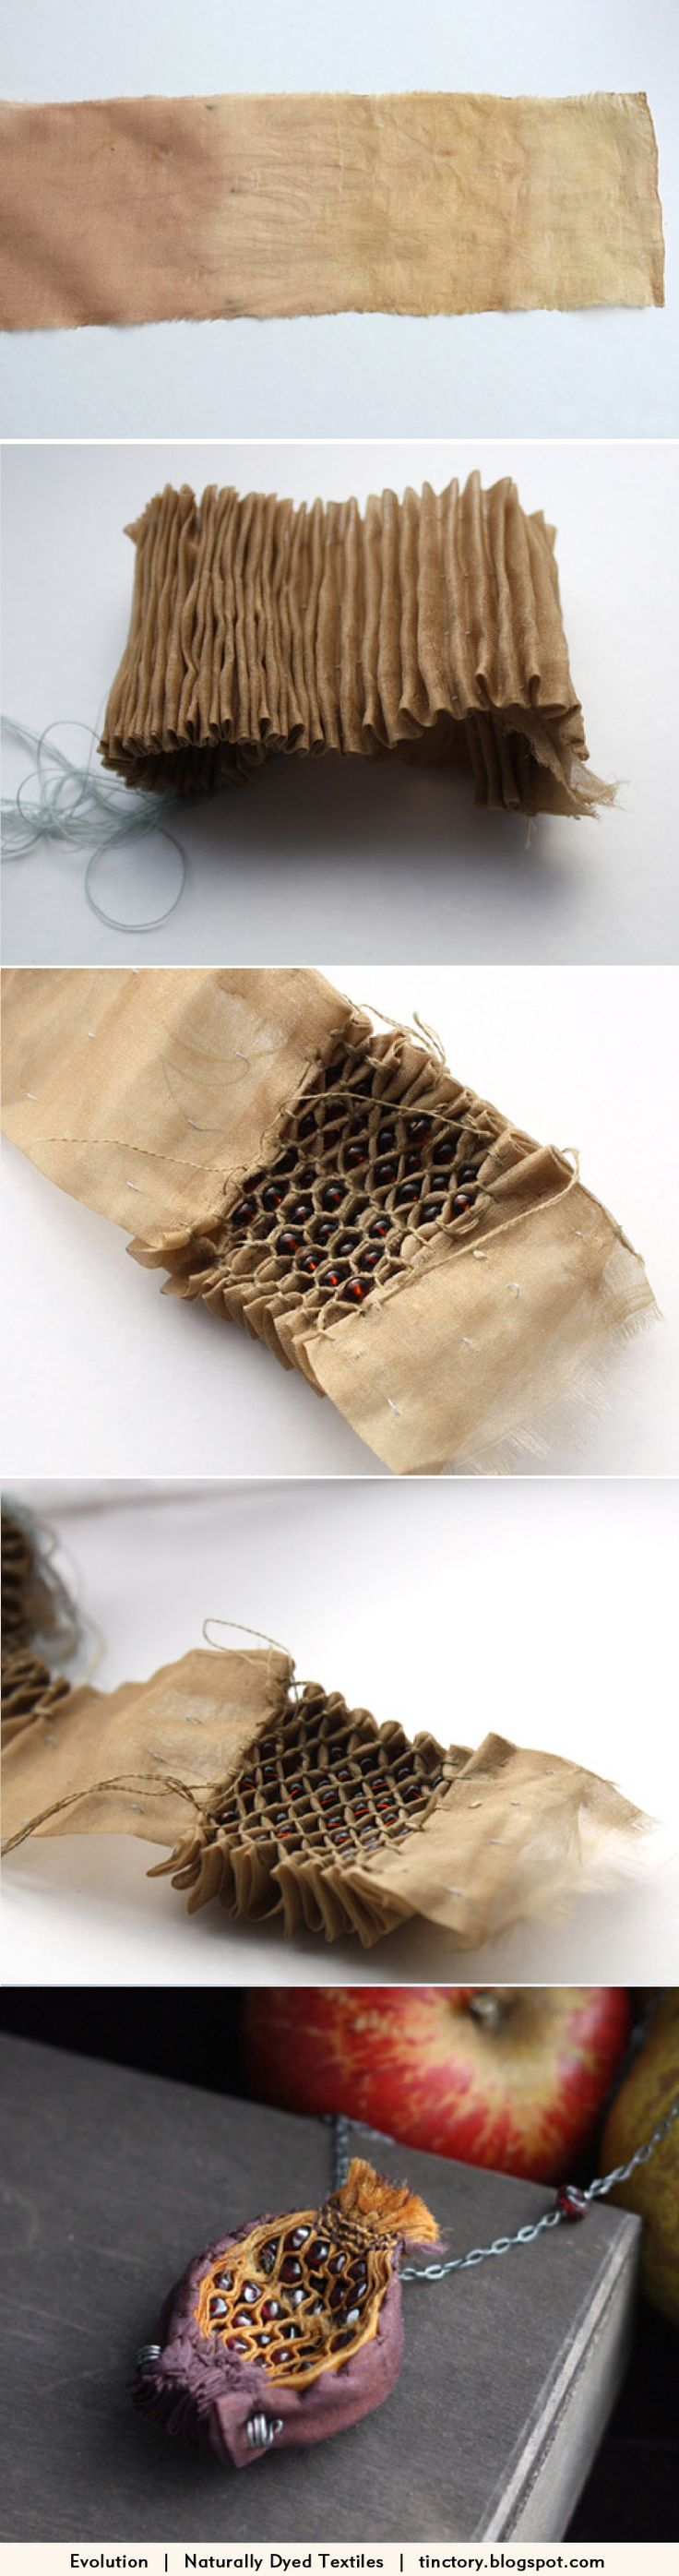 Fabric Manipulation - honeycomb smocking using naturally dyed fabric; creative sewing; texture; textiles design // Eva Fulinova, Tinctory